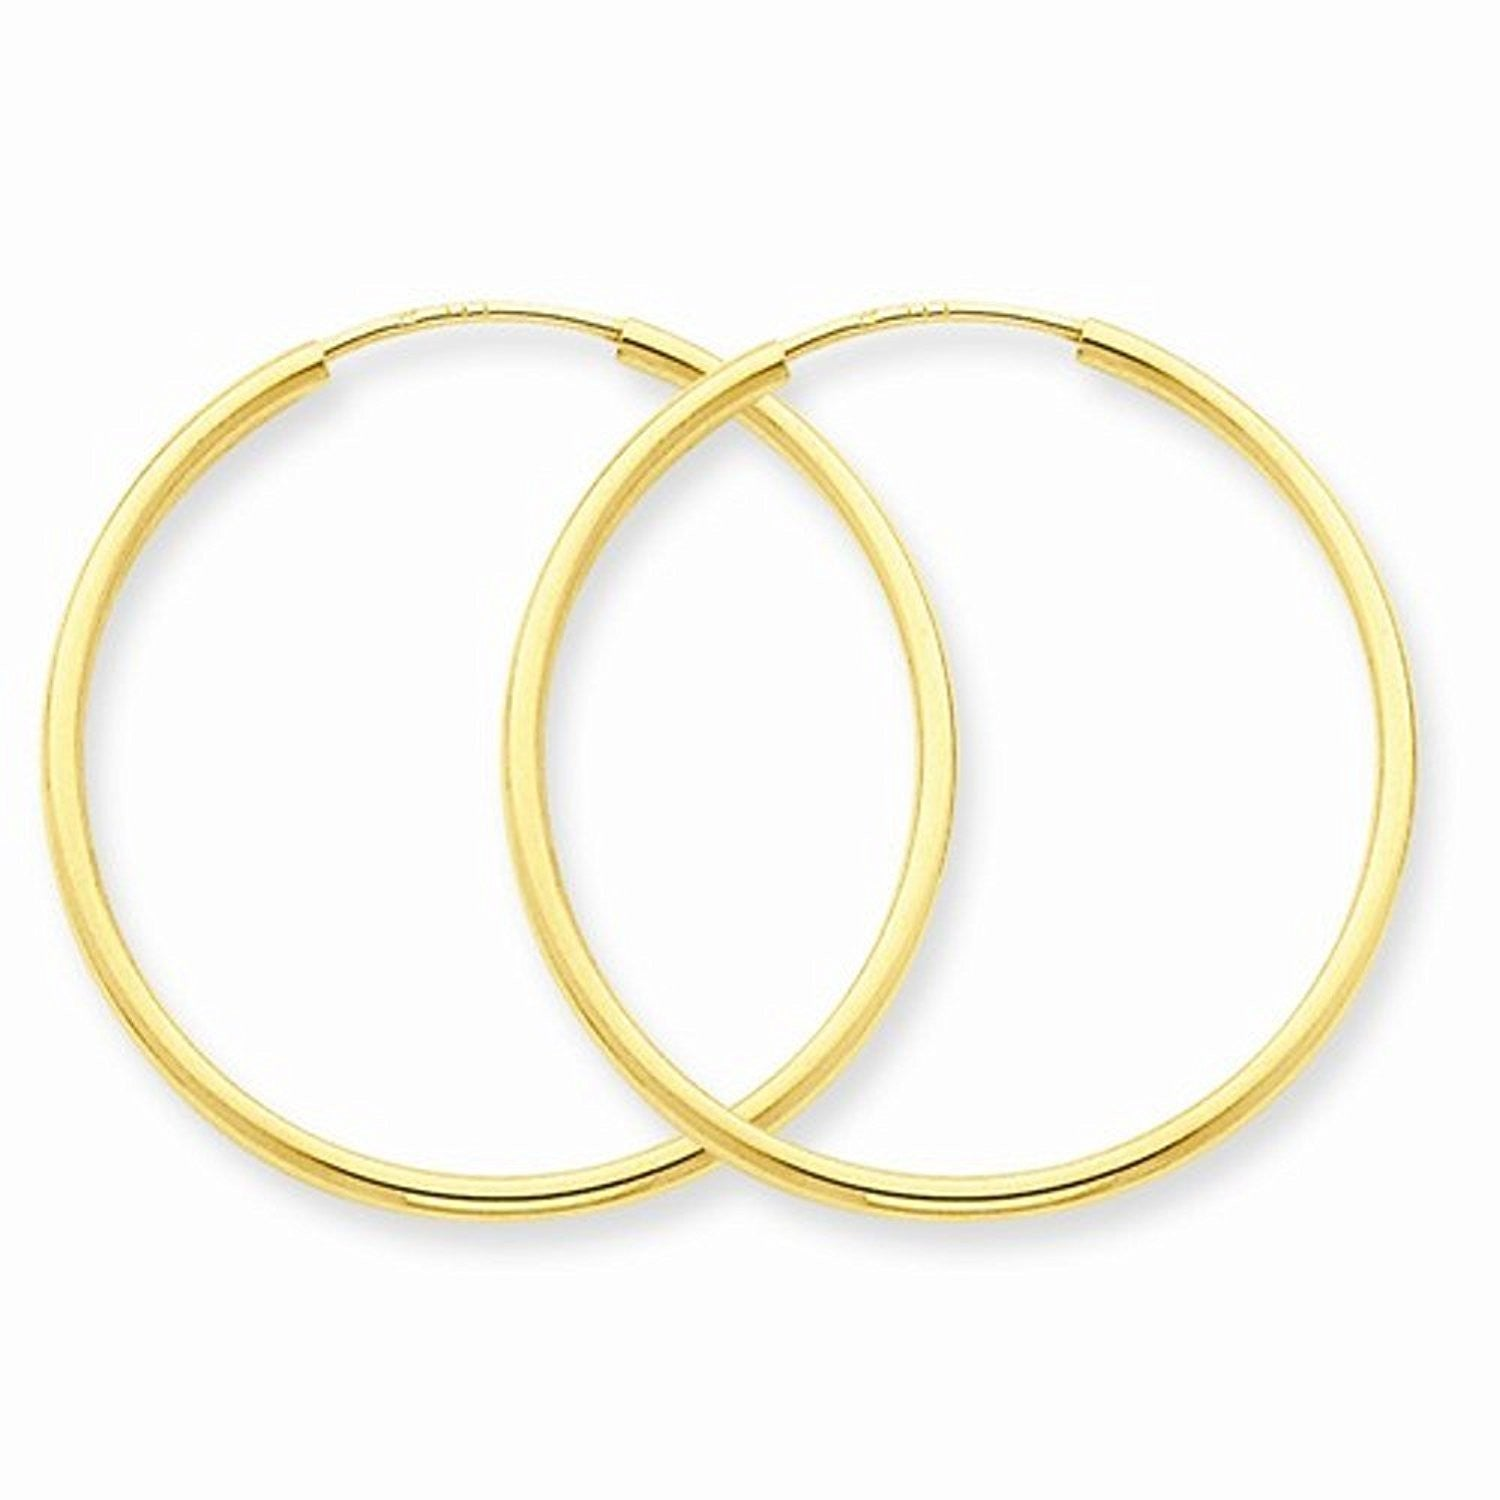 14K Yellow Gold 26mm x 1.5mm Endless Round Hoop Earrings